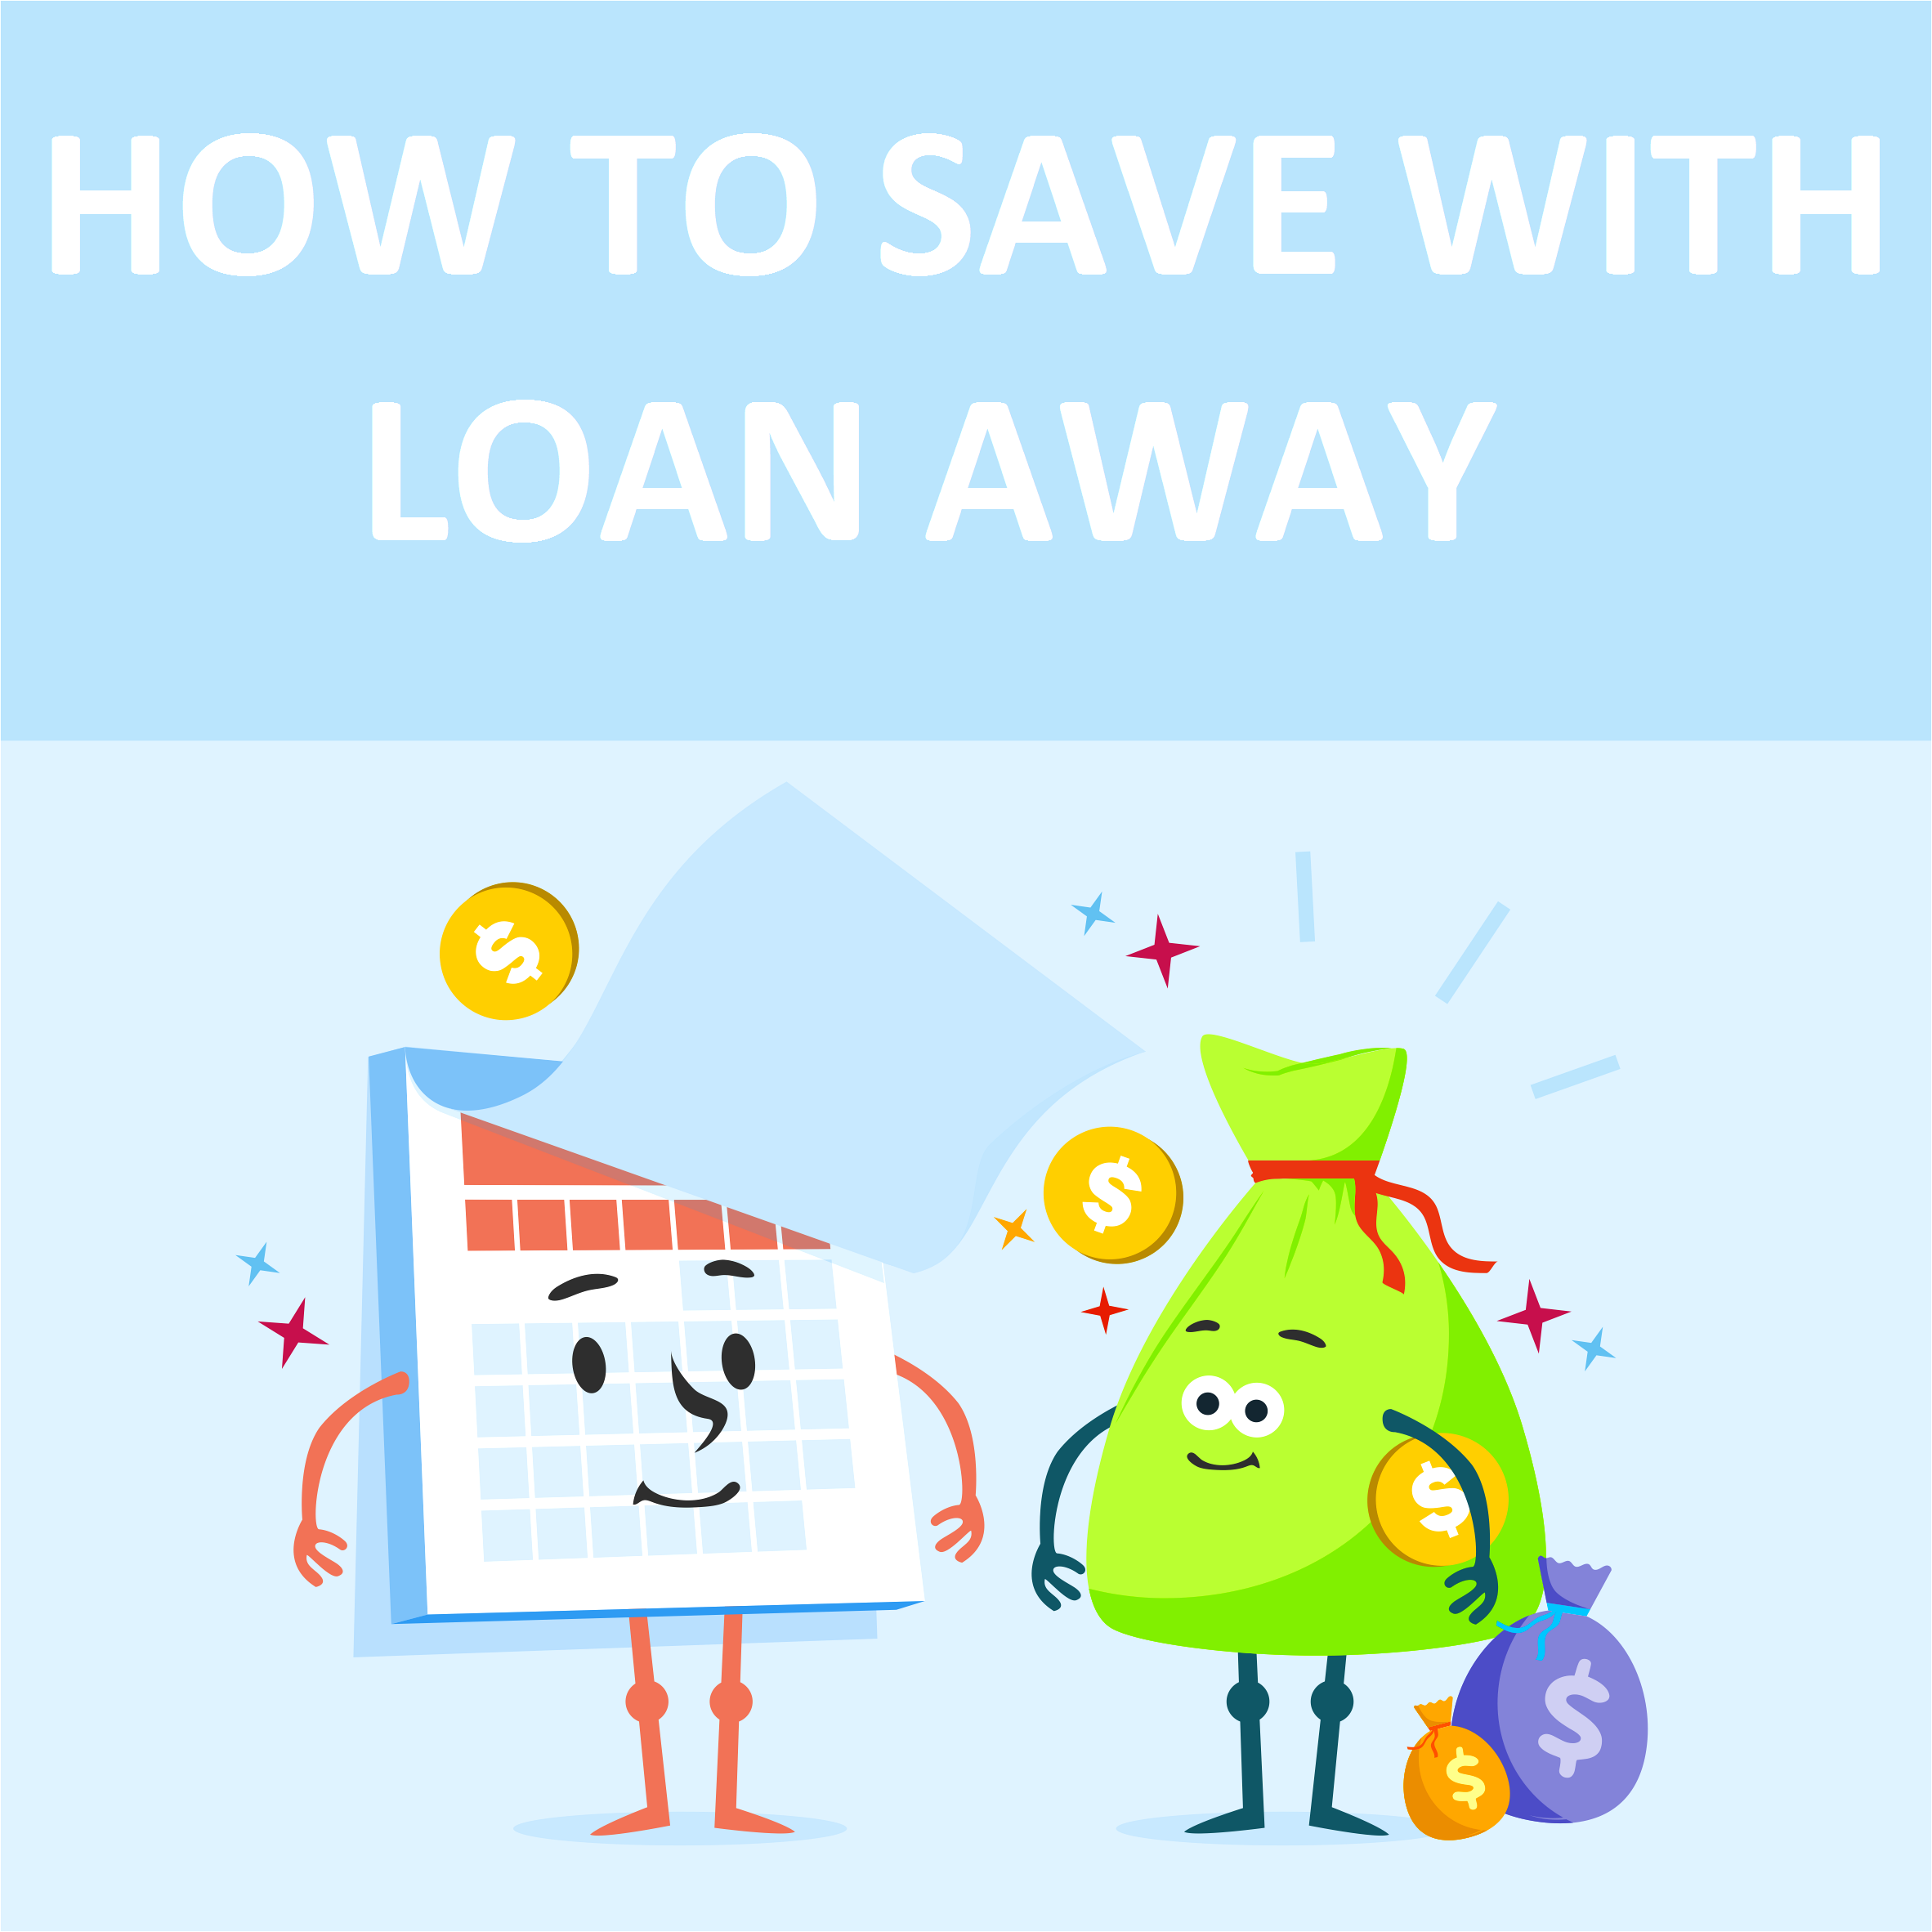 How To Save With Loan Away